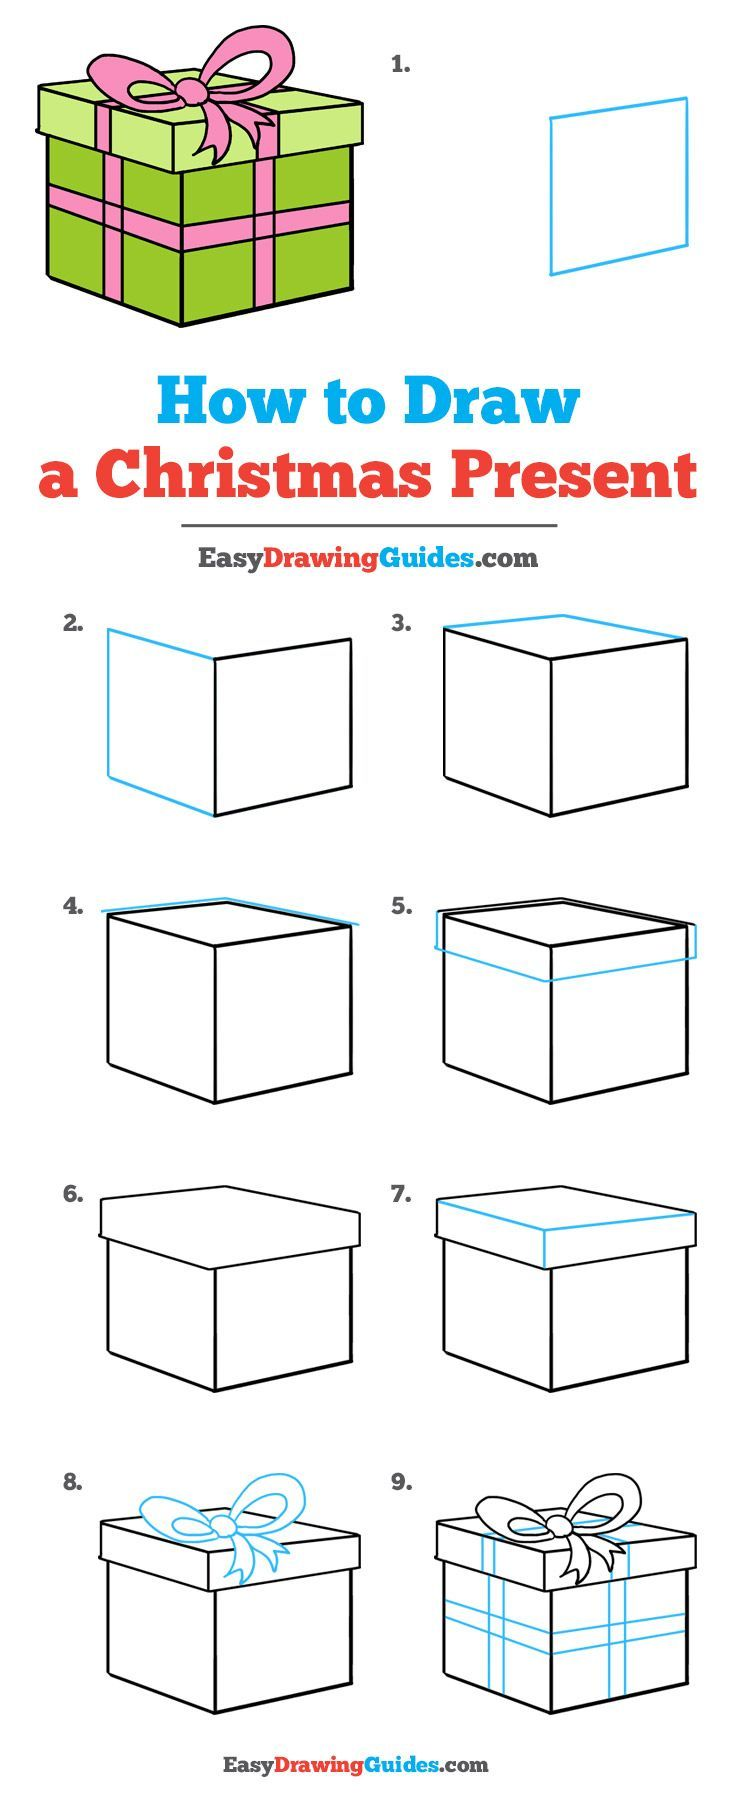 How to Draw a Christmas Present Drawing tutorials for